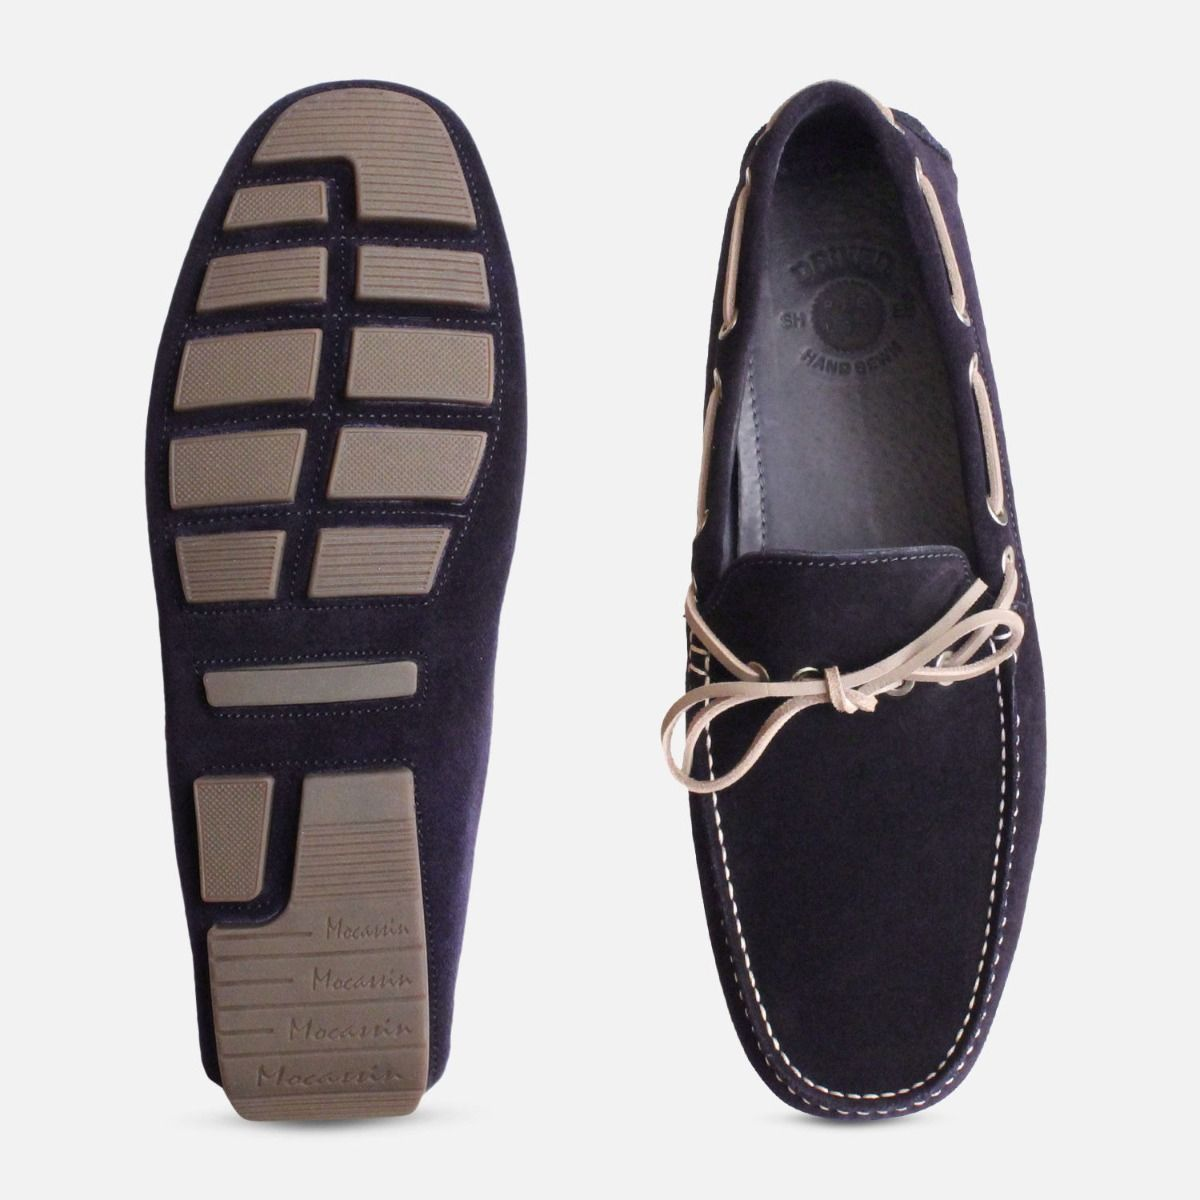 Navy Blue & Grey Designer Driving Shoes